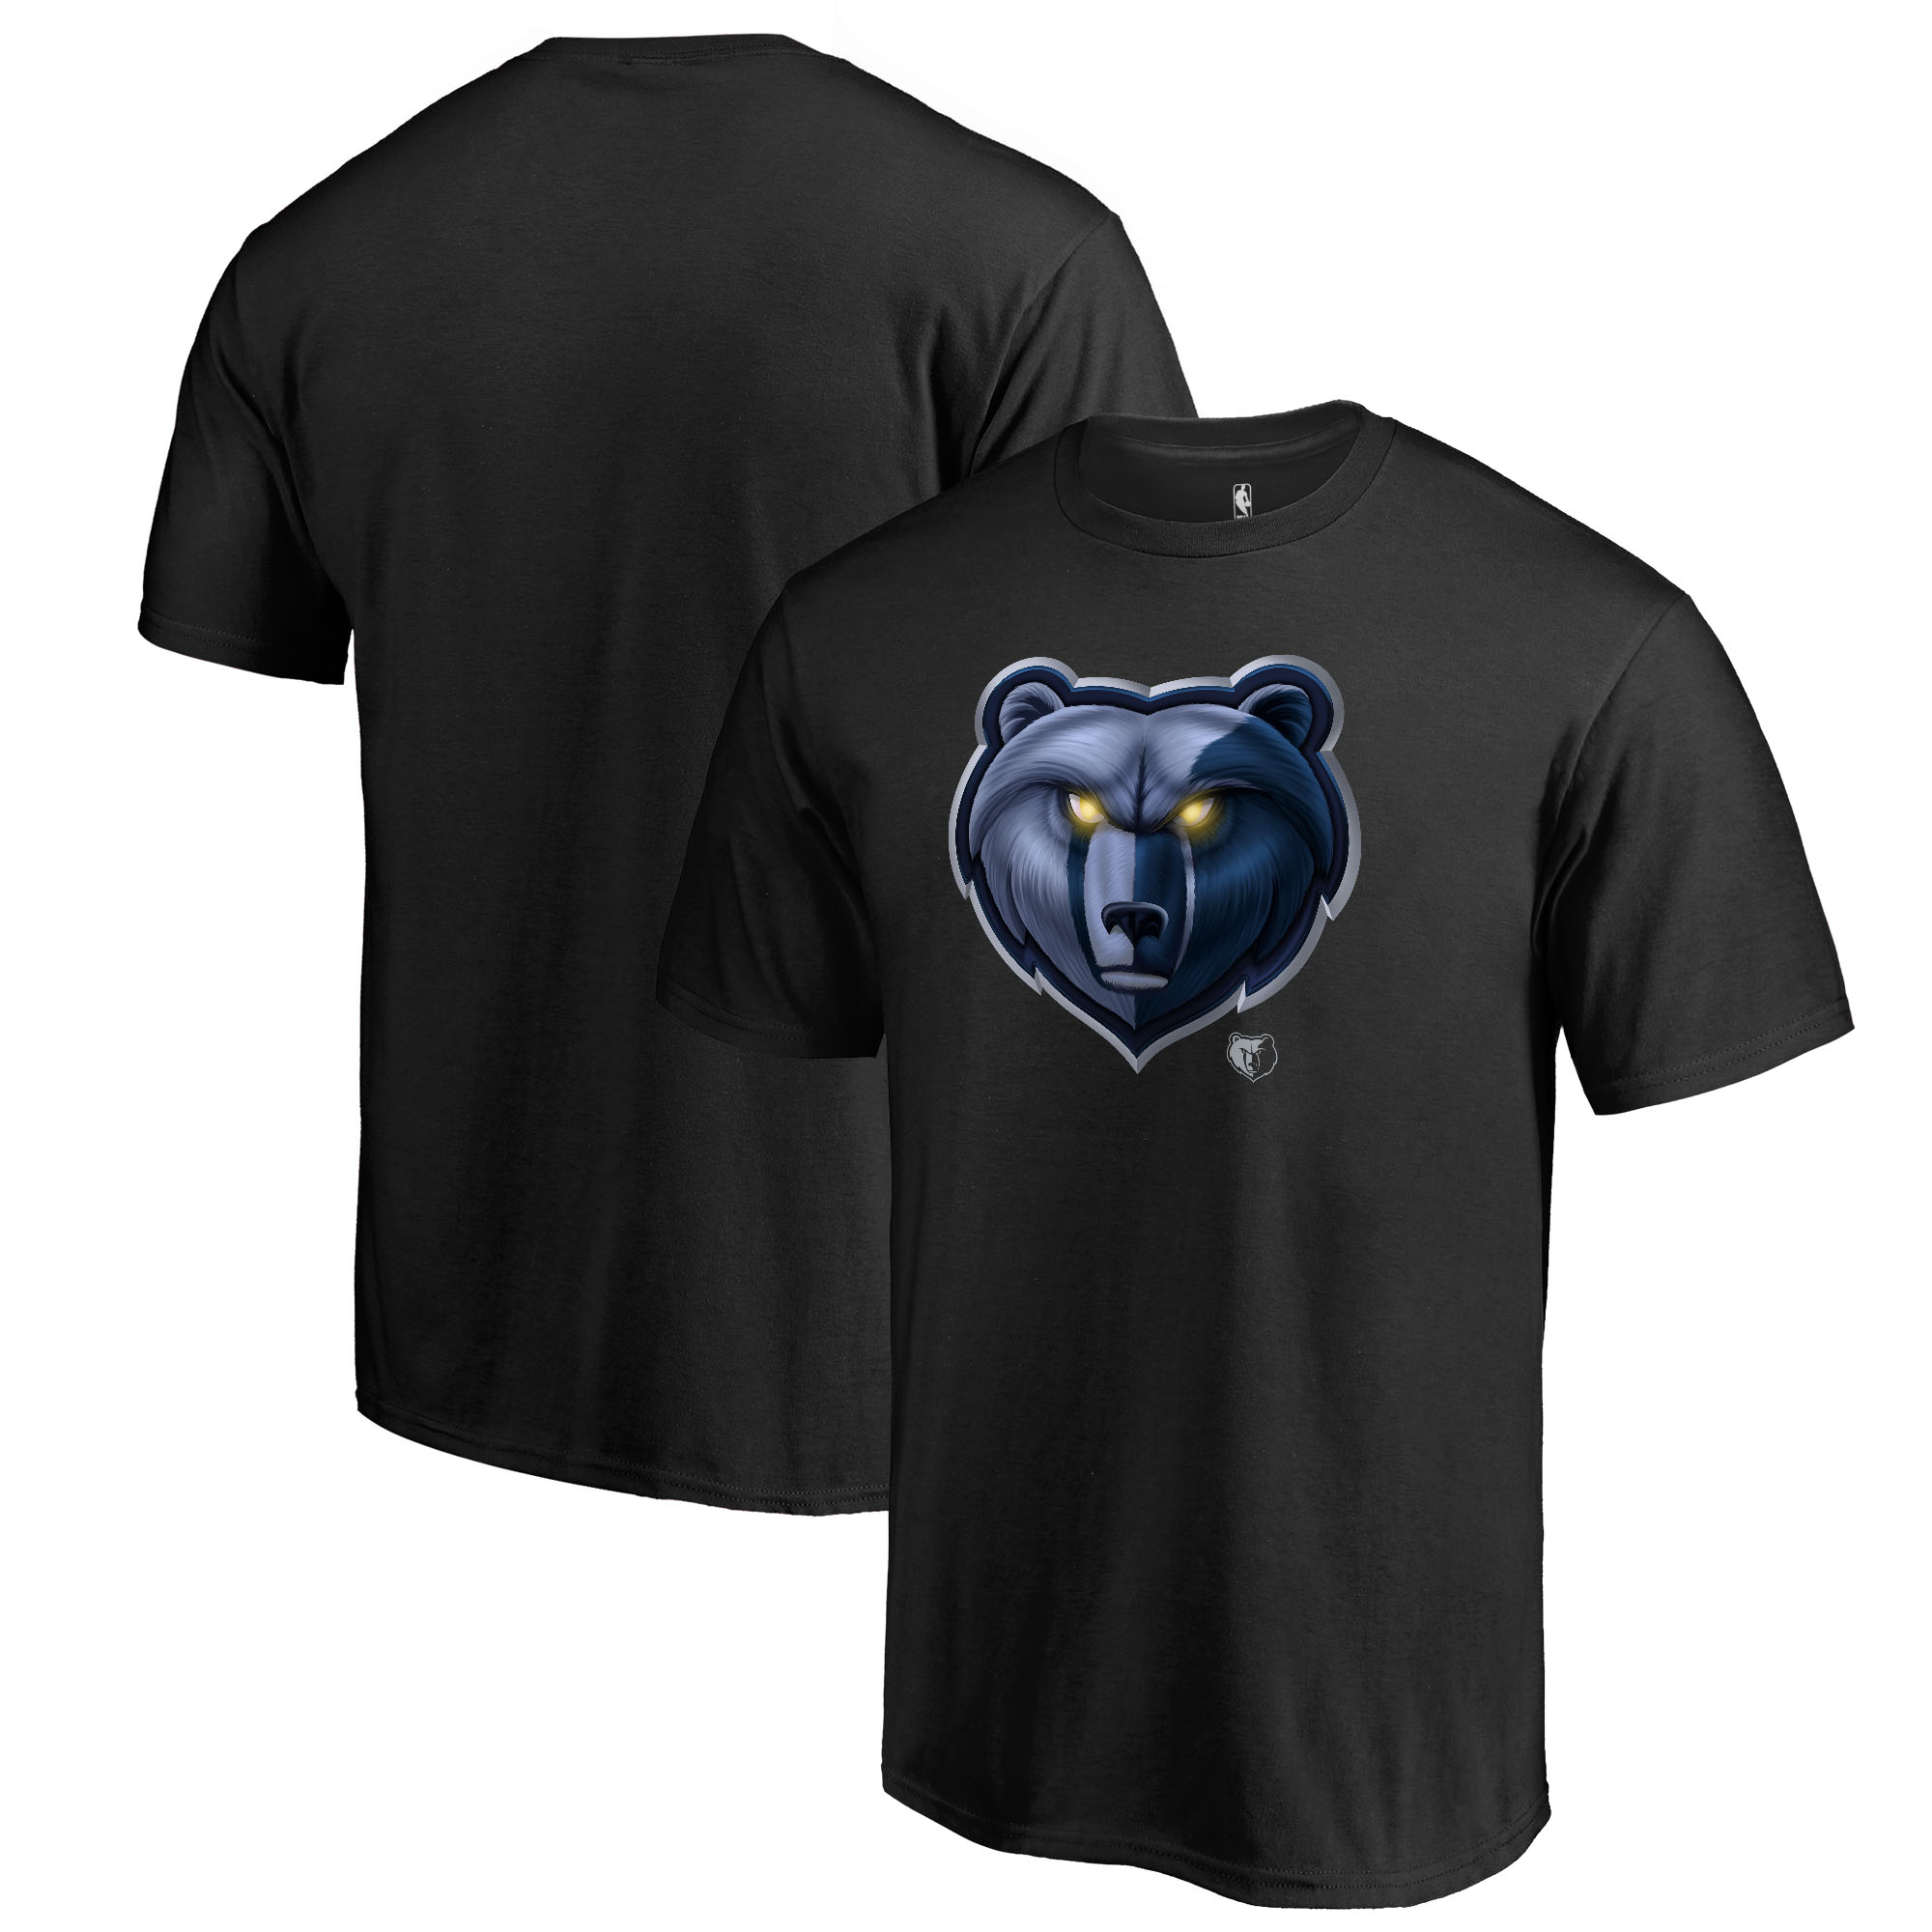 Memphis Grizzlies Fanatics Branded Midnight Mascot Big and Tall T-Shirt - Black